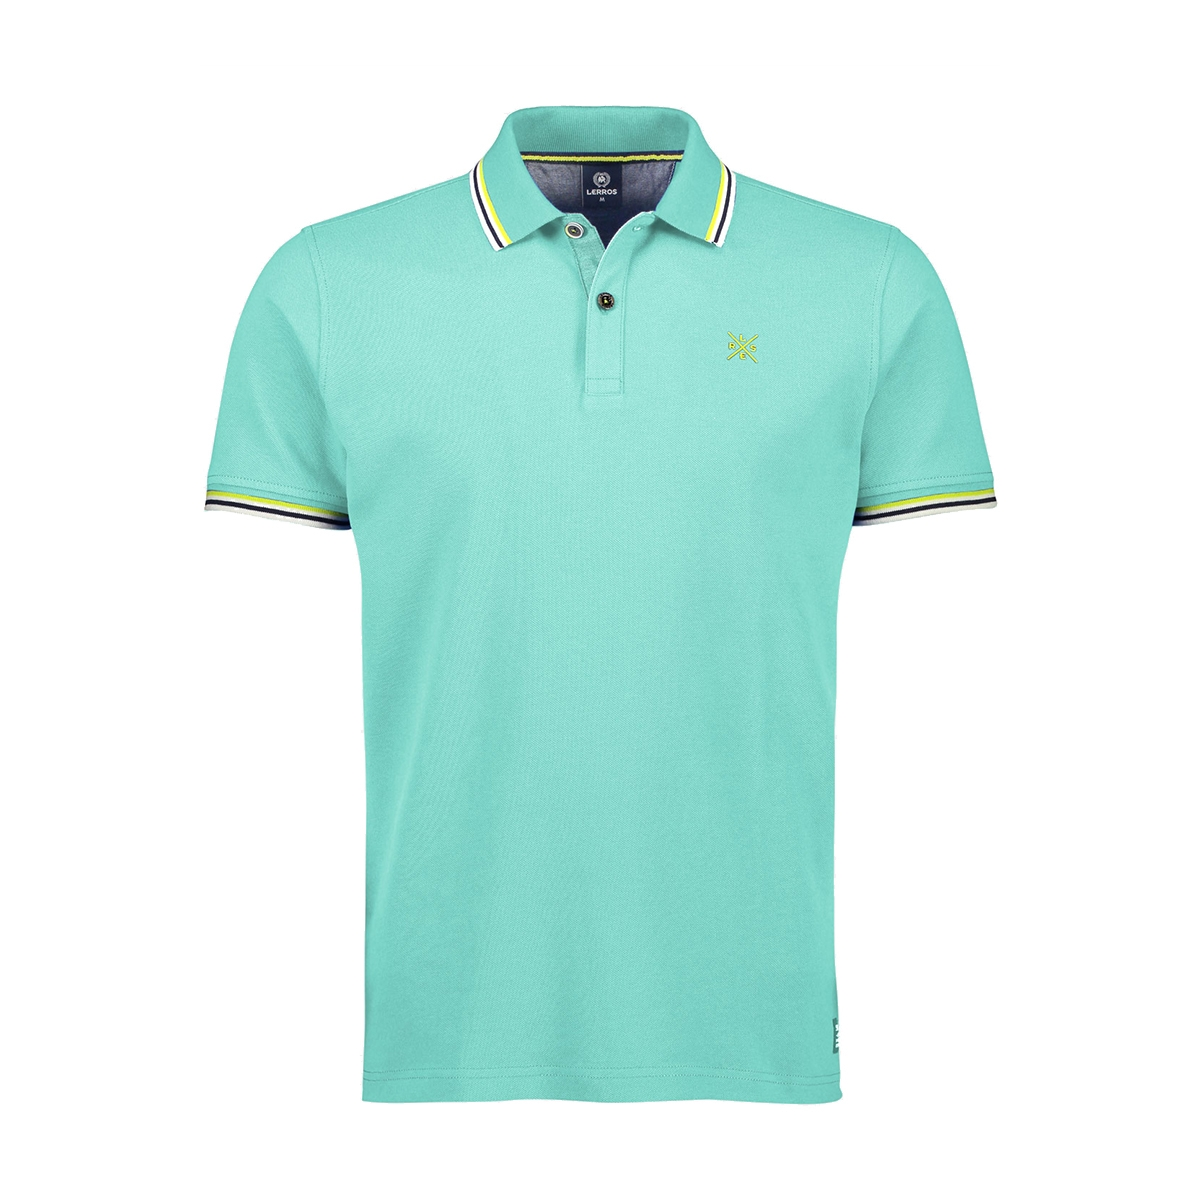 poloshirt met contrast details 2043209 lerros polo 617